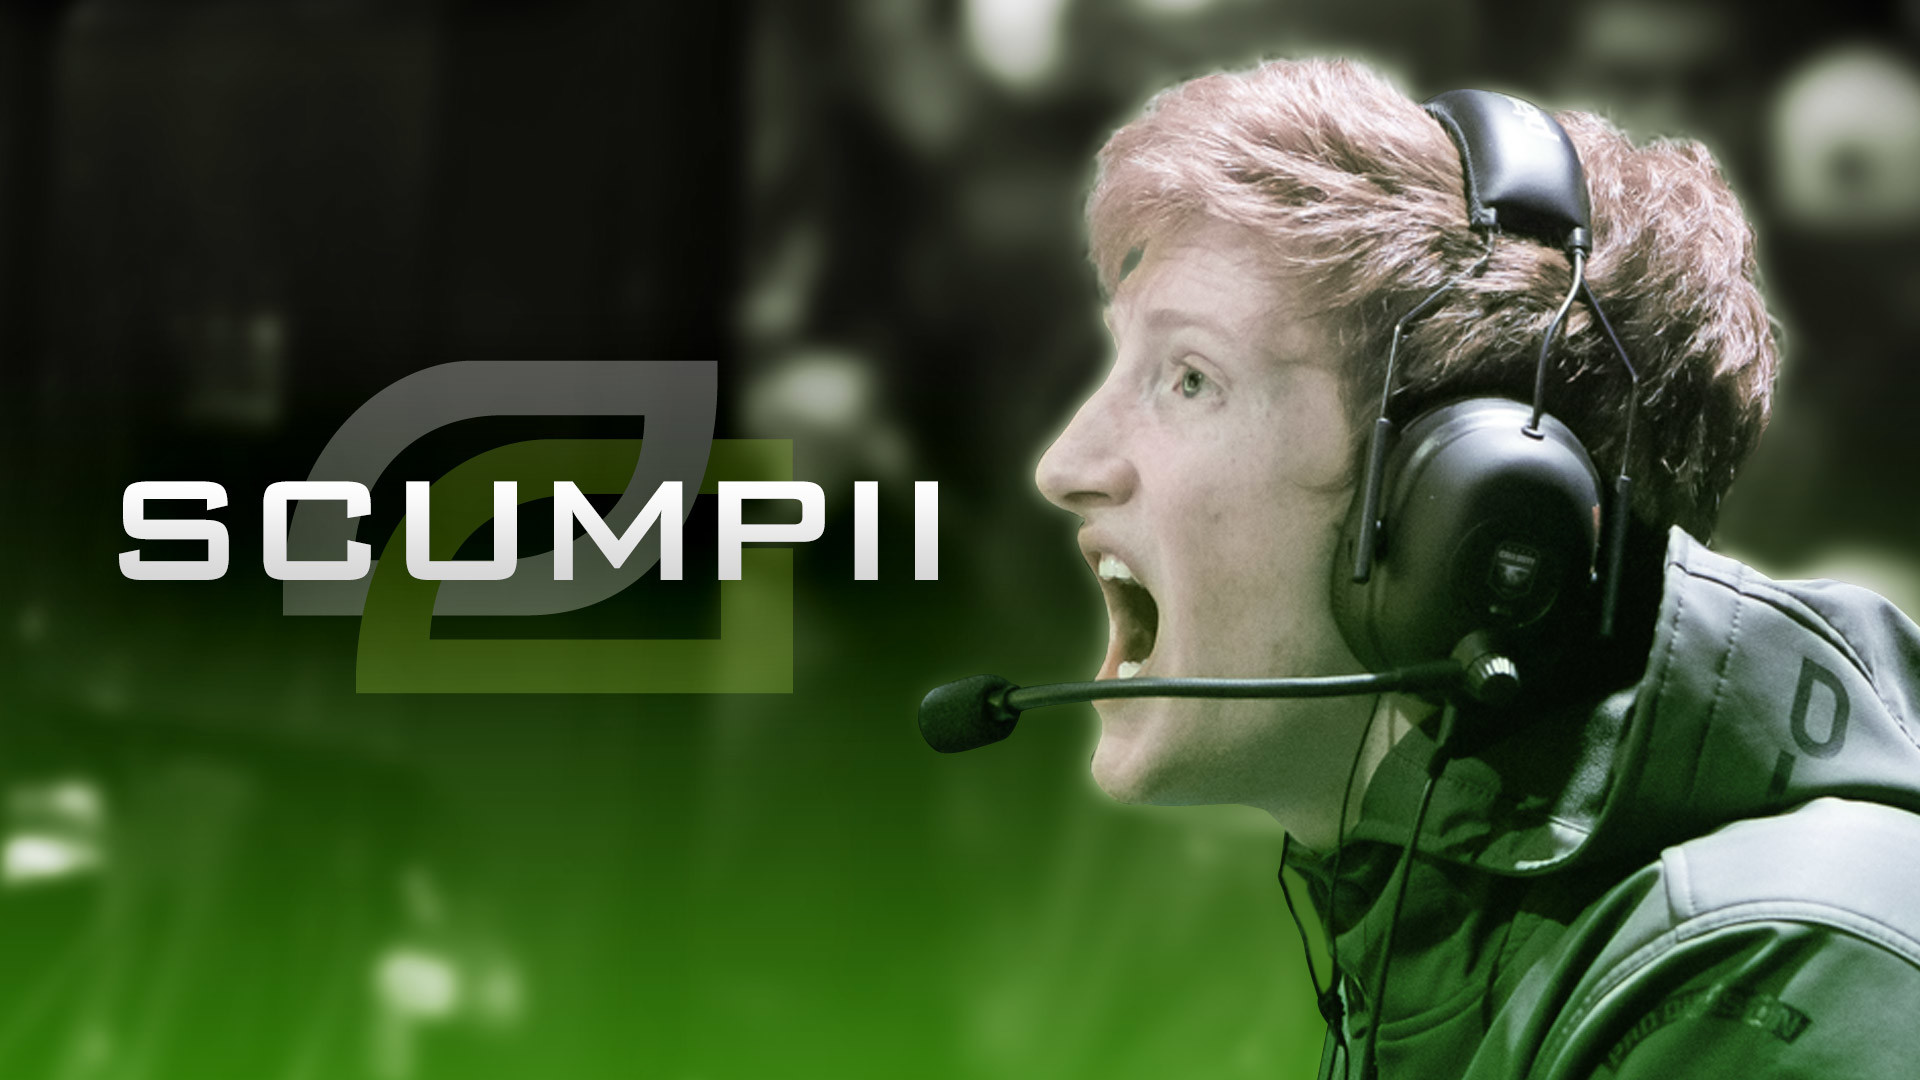 1920x1080 scump optic gaming hd wallpapers high definition cool desktop wallpapers  for windows apple tablet download free 1920×1080 Wallpaper HD